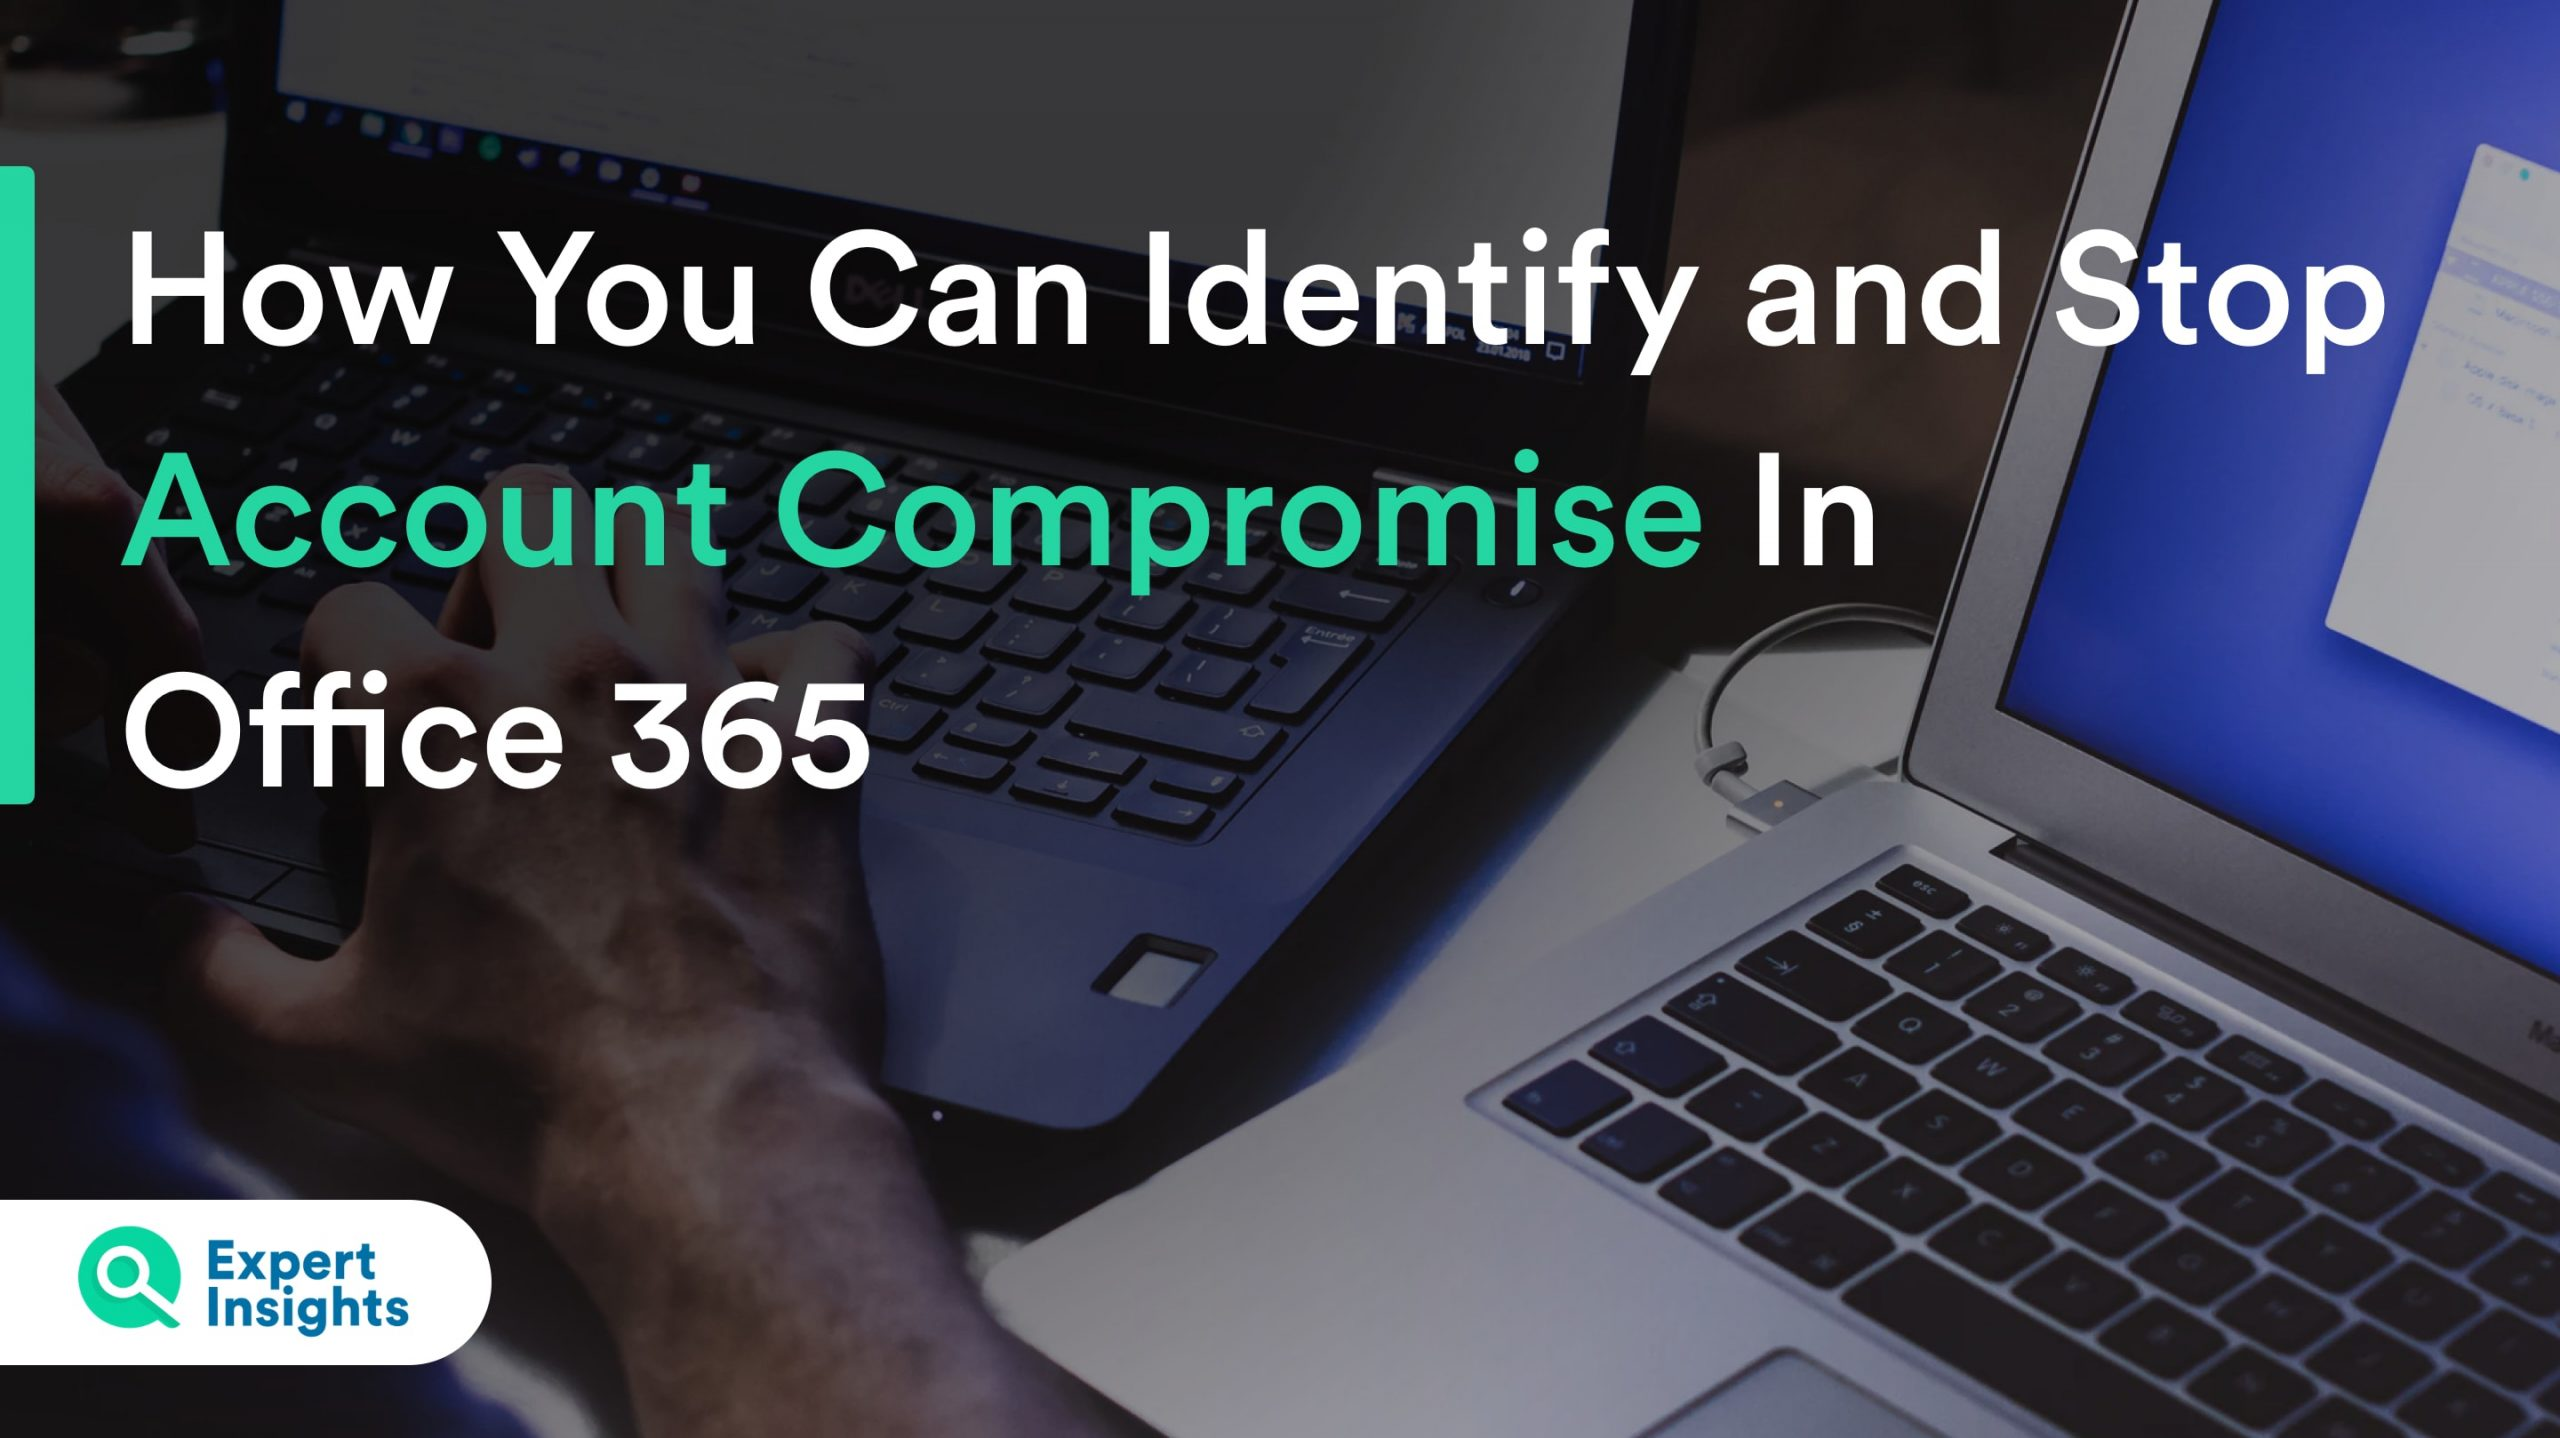 How To Identify And Stop Account Compromise